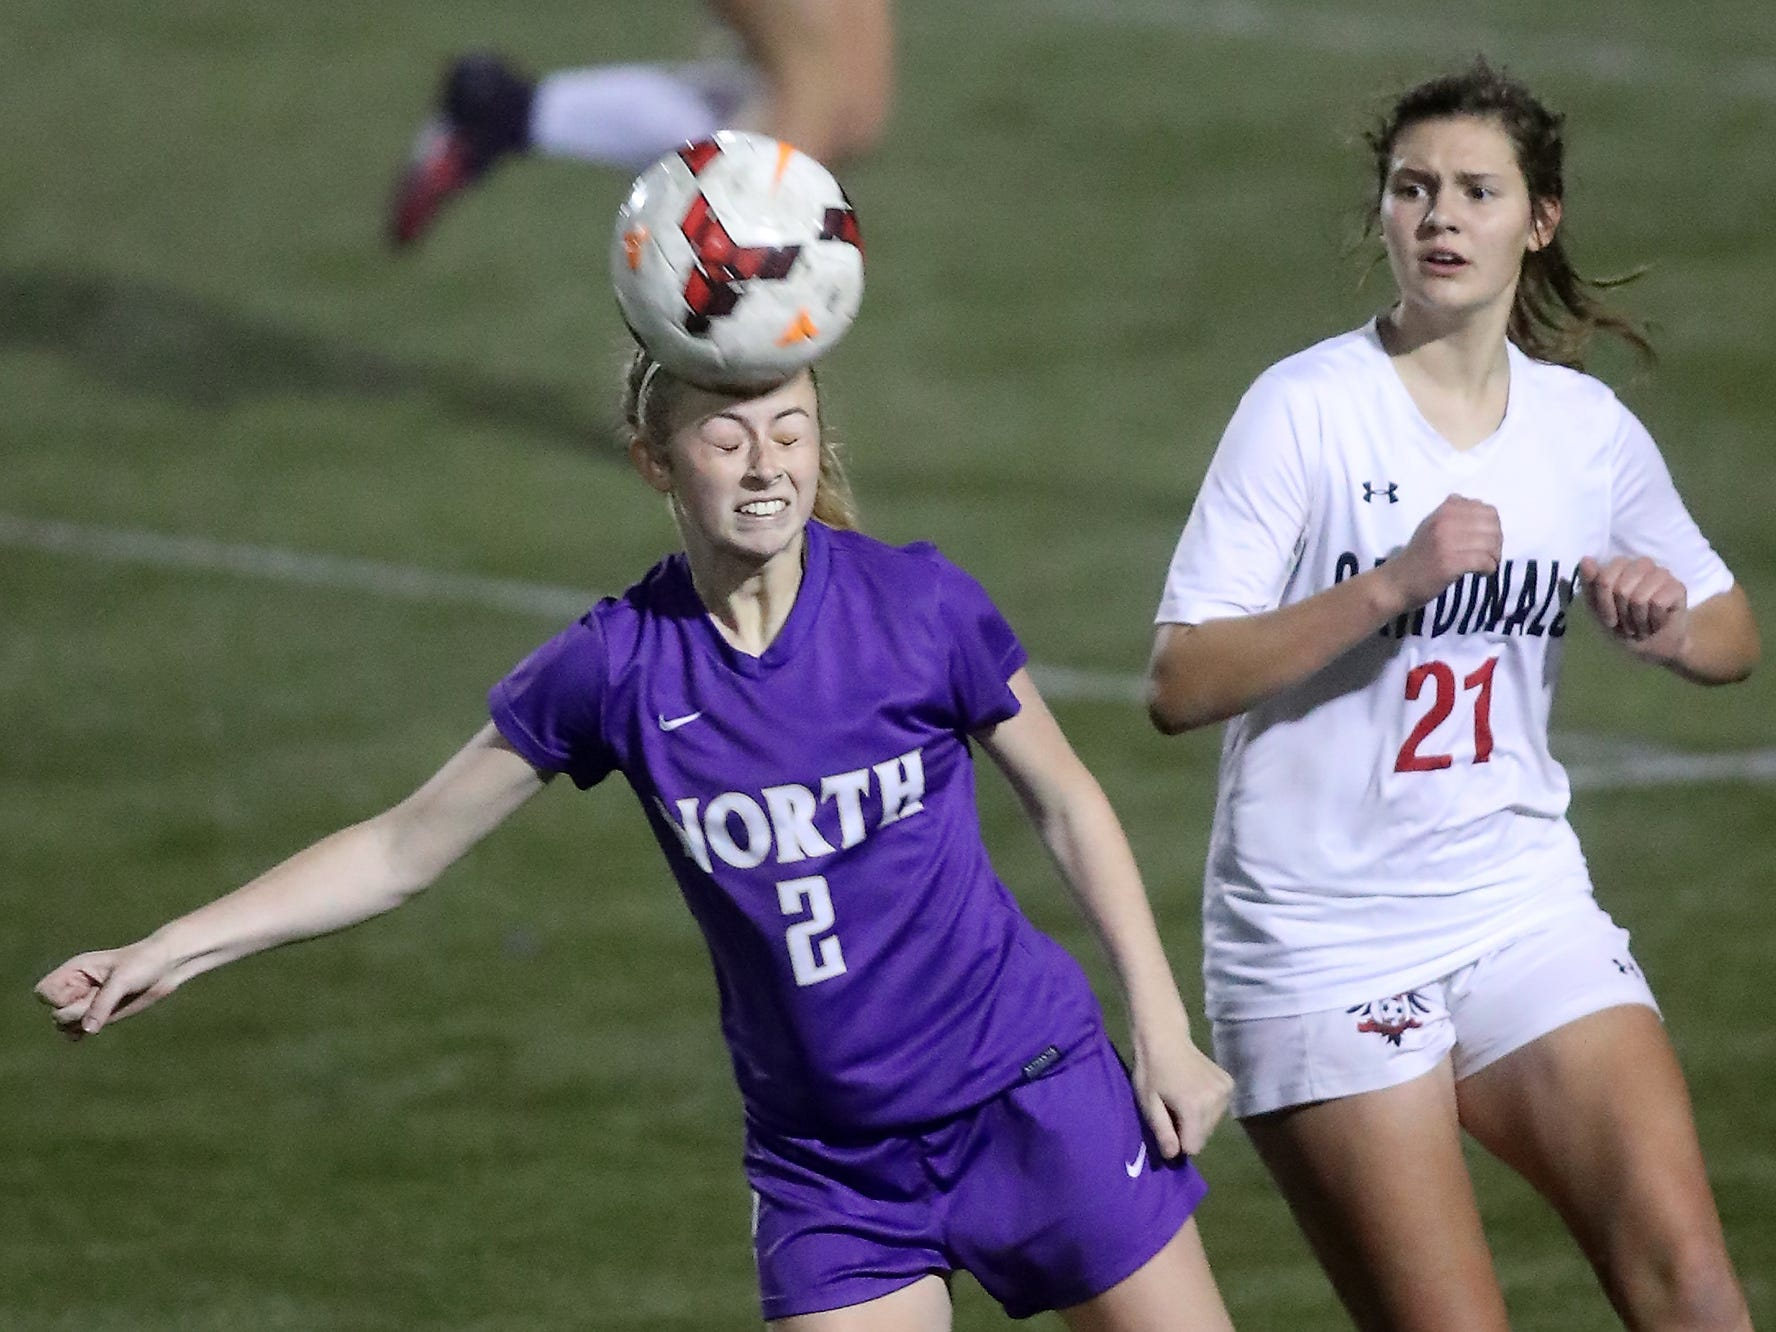 Orting's Hailey Hansen (21) looks on as North Kitsap's Mia St. Peter (2) connects with a header during their game in Poulsbo on Tuesday, October 30, 2018.